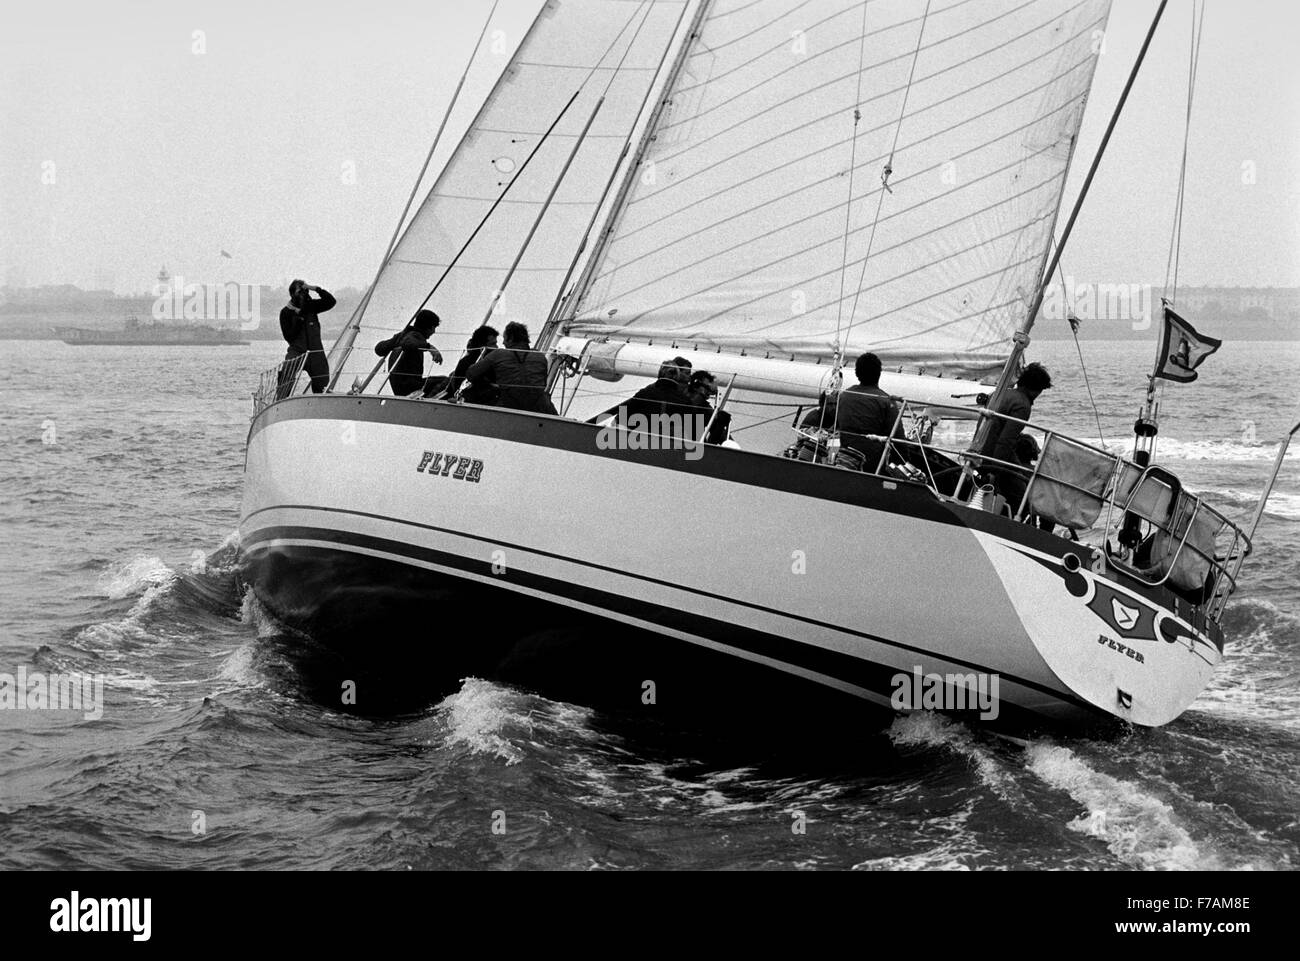 AJAXNETPHOTO. MARCH 29TH, 1982. PORTSMOUTH, ENGLAND -  FLYING DUTCHMAN NEARS RACE END - DUTCH YACHT FLYER IN SIGHT - Stock Image